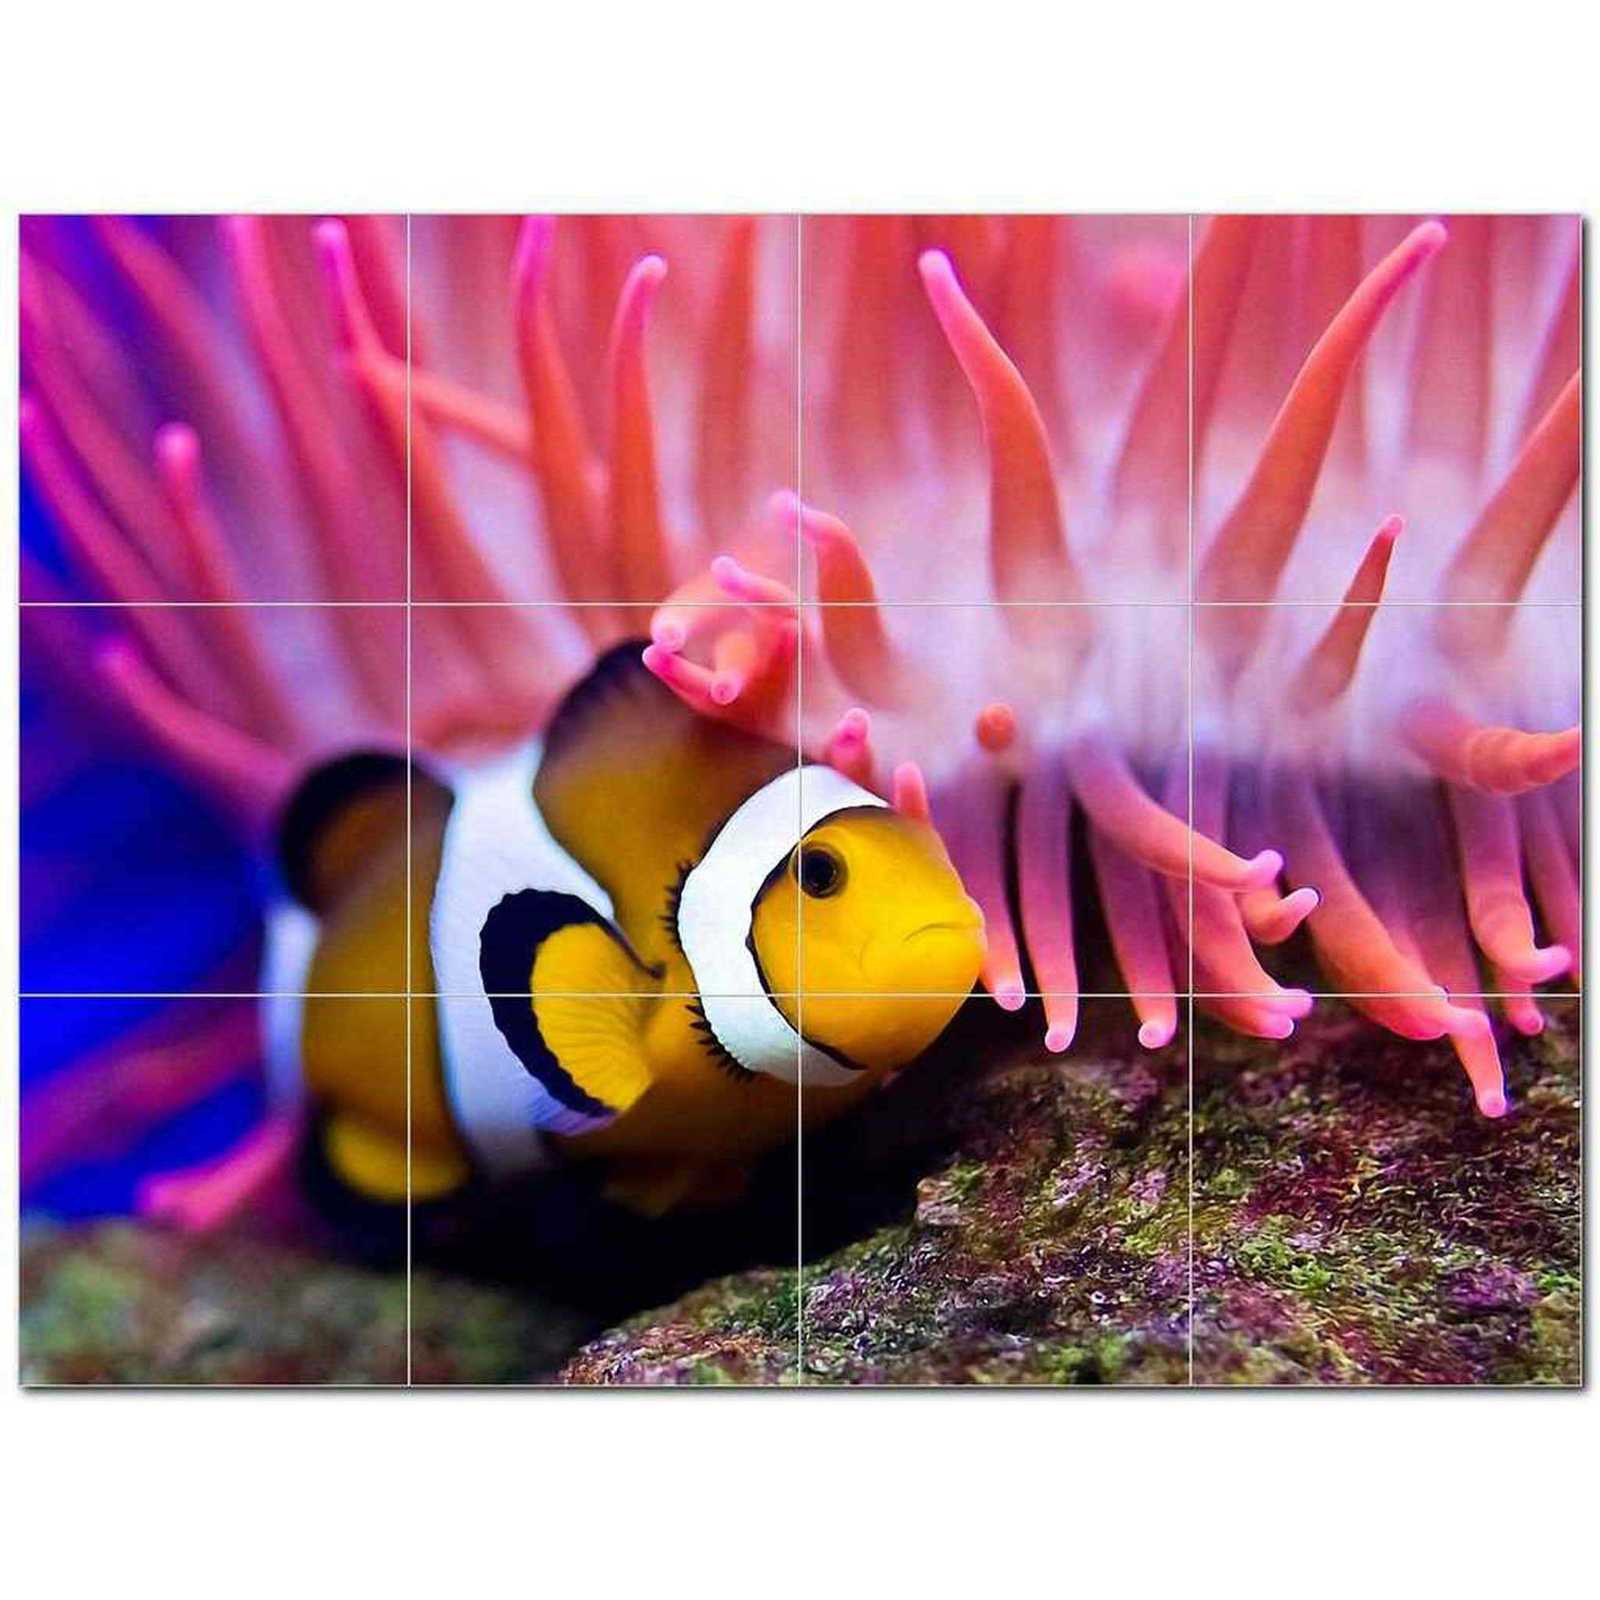 Primary image for Sealife Photo Ceramic Tile Mural Kitchen Backsplash Bathroom Shower BAZ405781